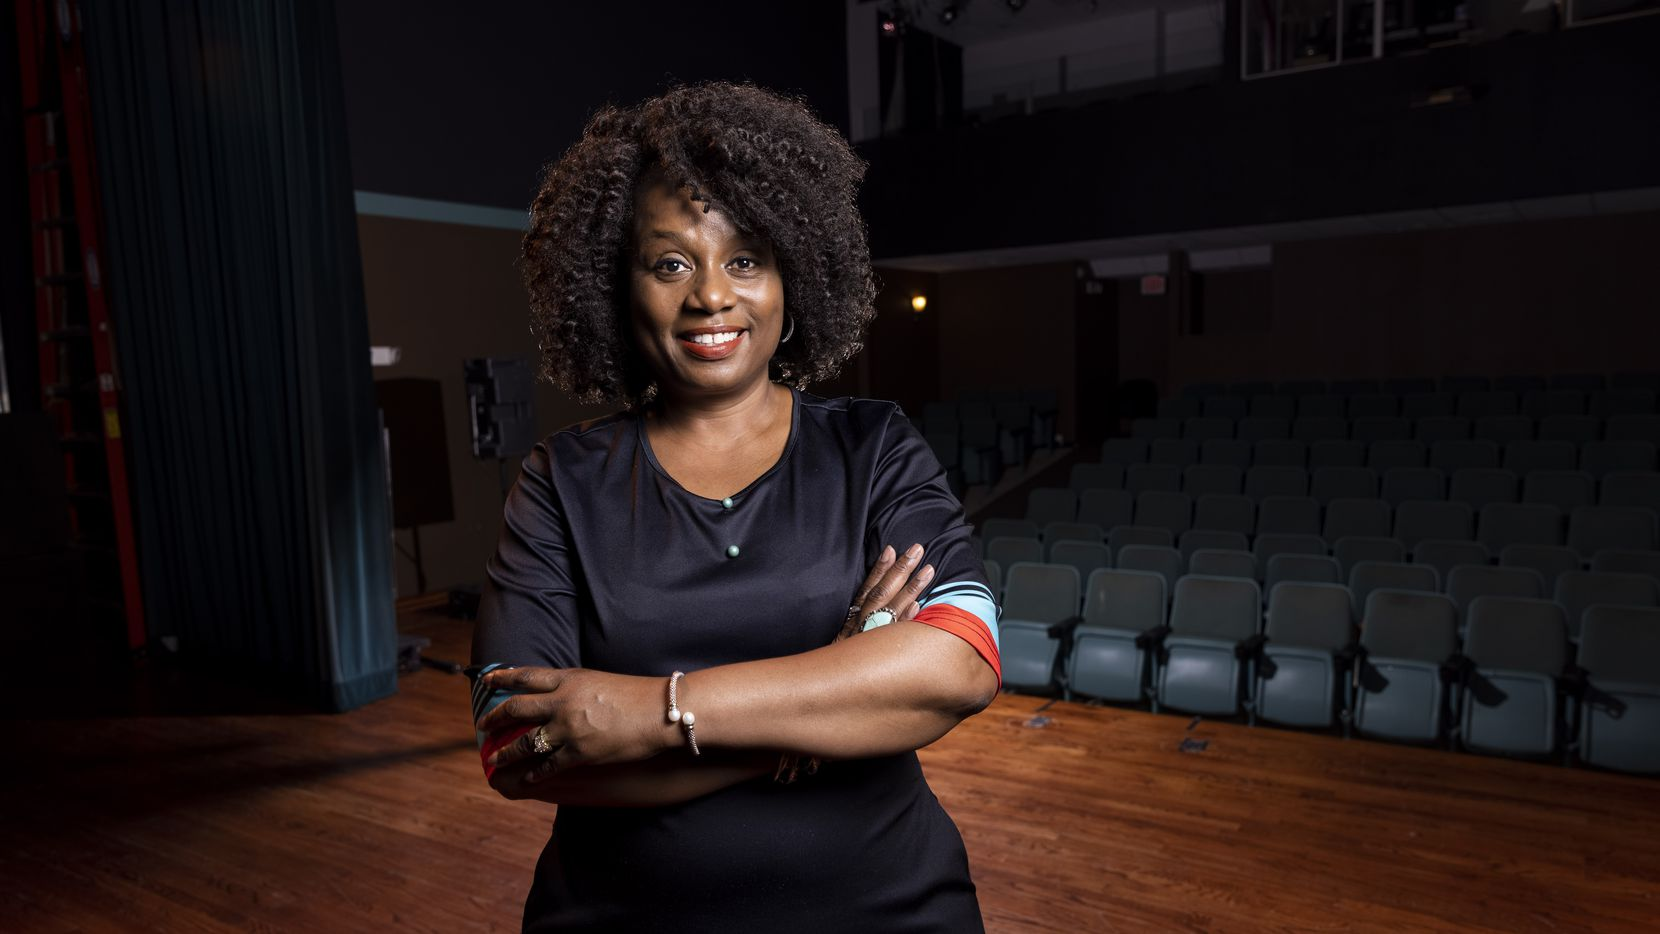 Teresa Coleman Wash, executive artistic director and founder of Bishop Arts Theatre Center in Dallas, says the federal funding has been akin to manna from heaven.